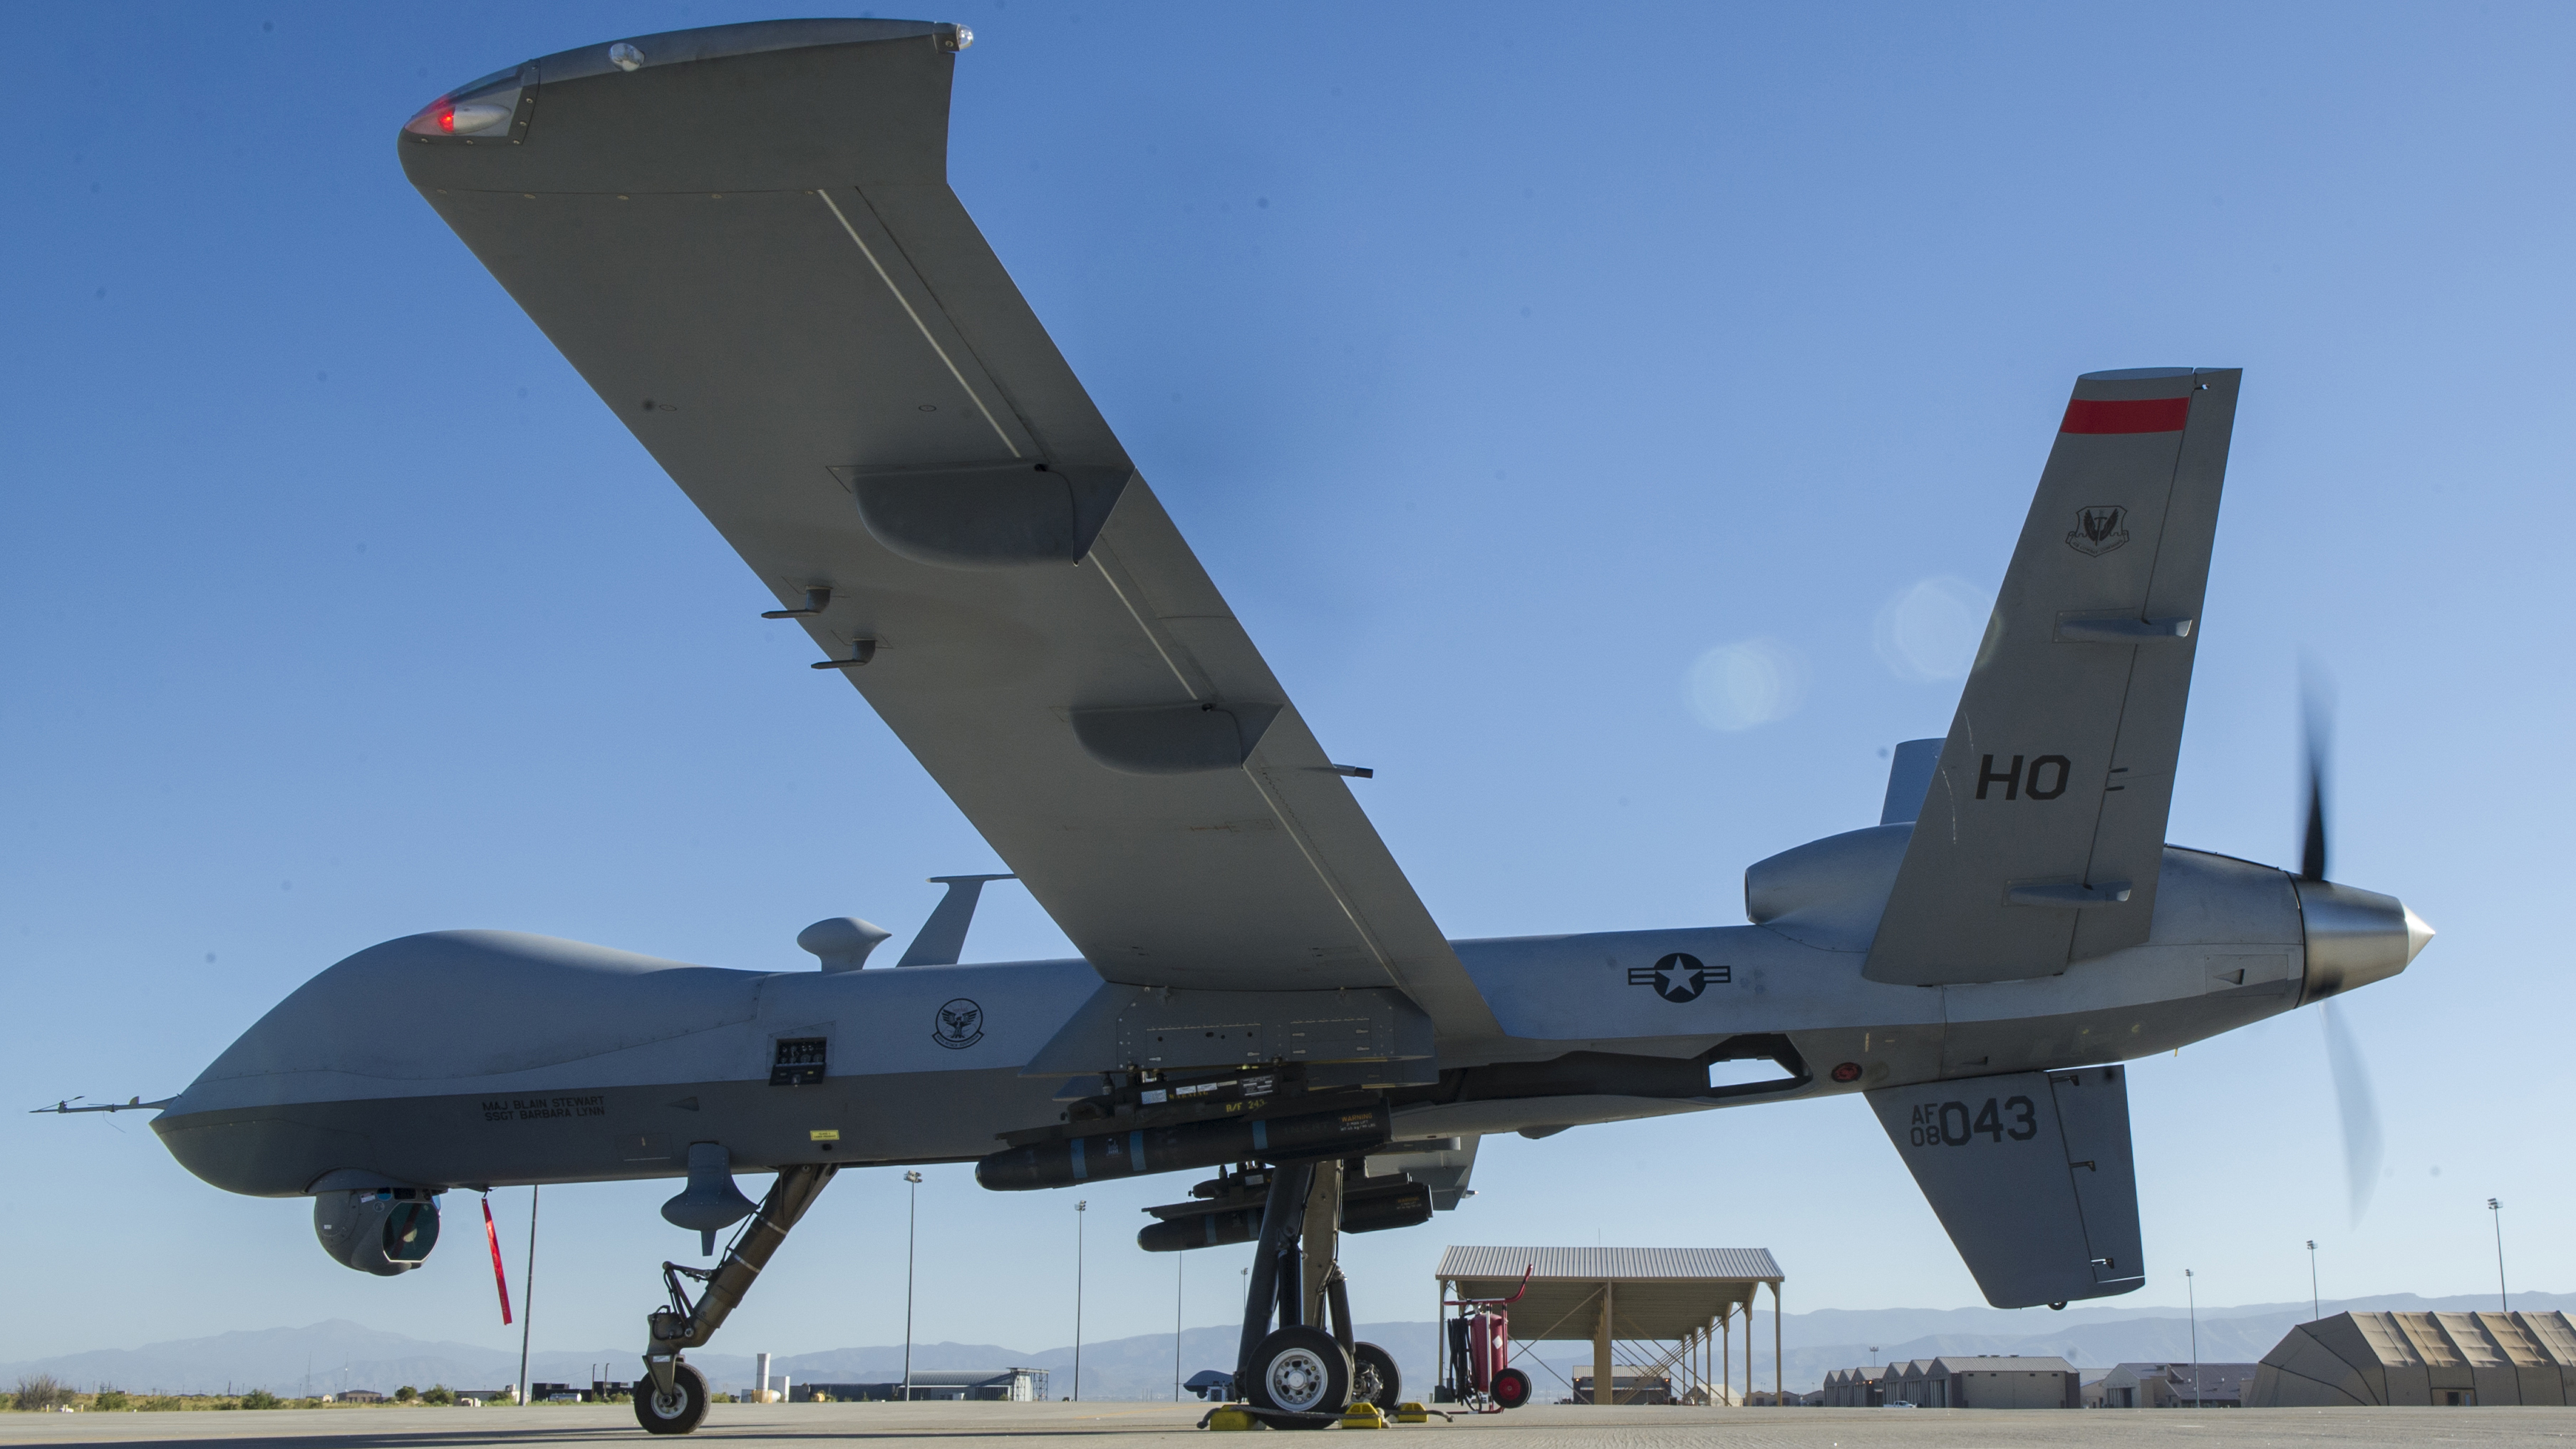 An MQ-9 Reaper readies for takeoff at Holloman, AFB in New Mexico.